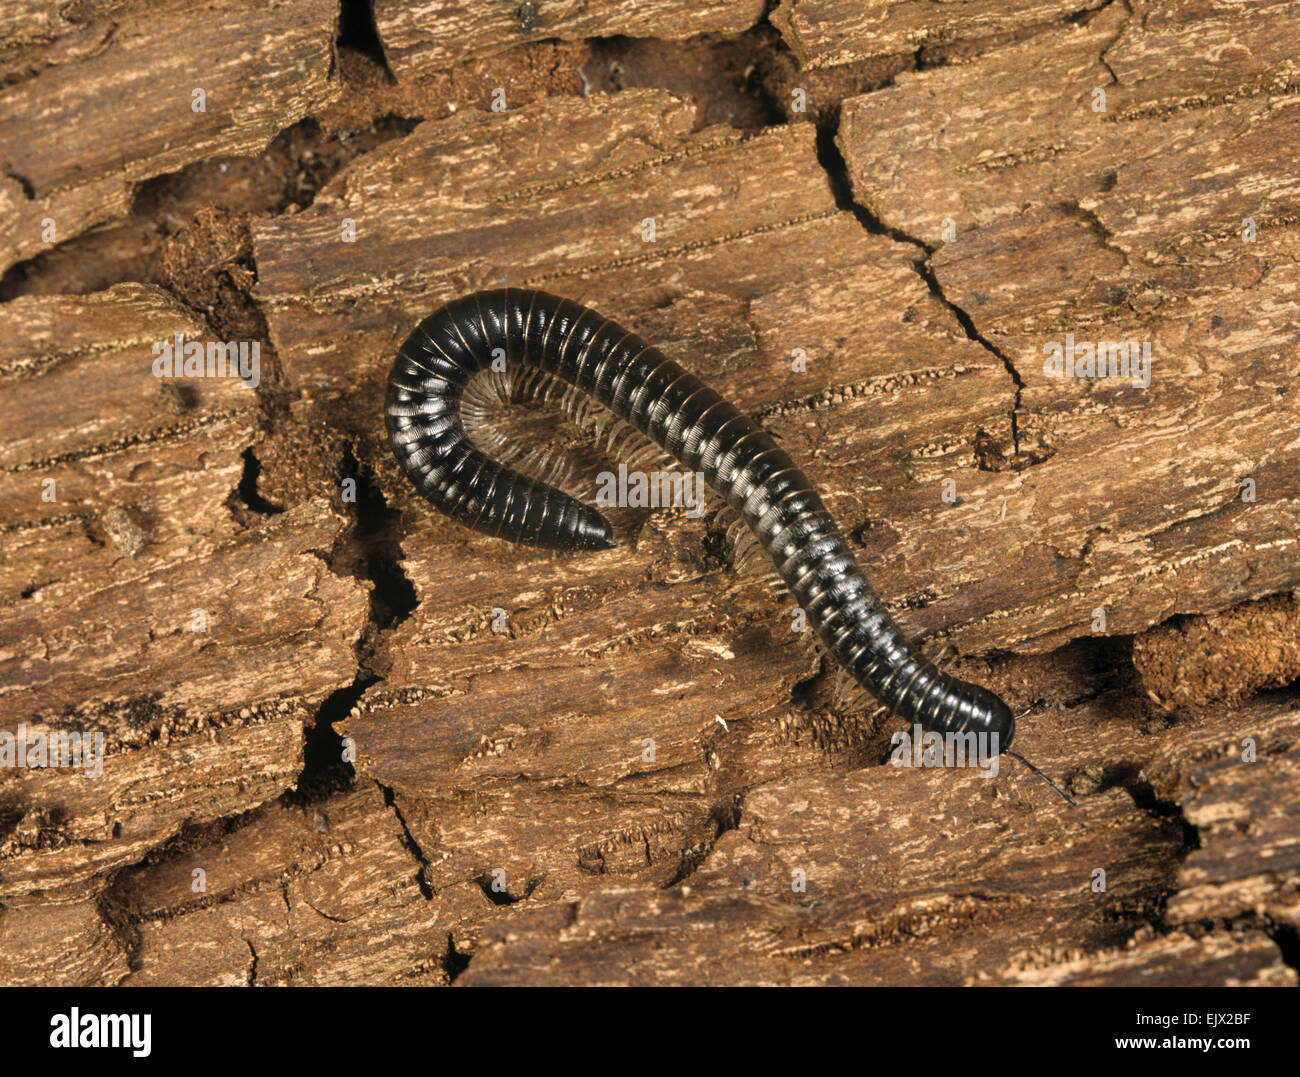 The Black Millipede - Tachypodoiulus niger - Stock Image